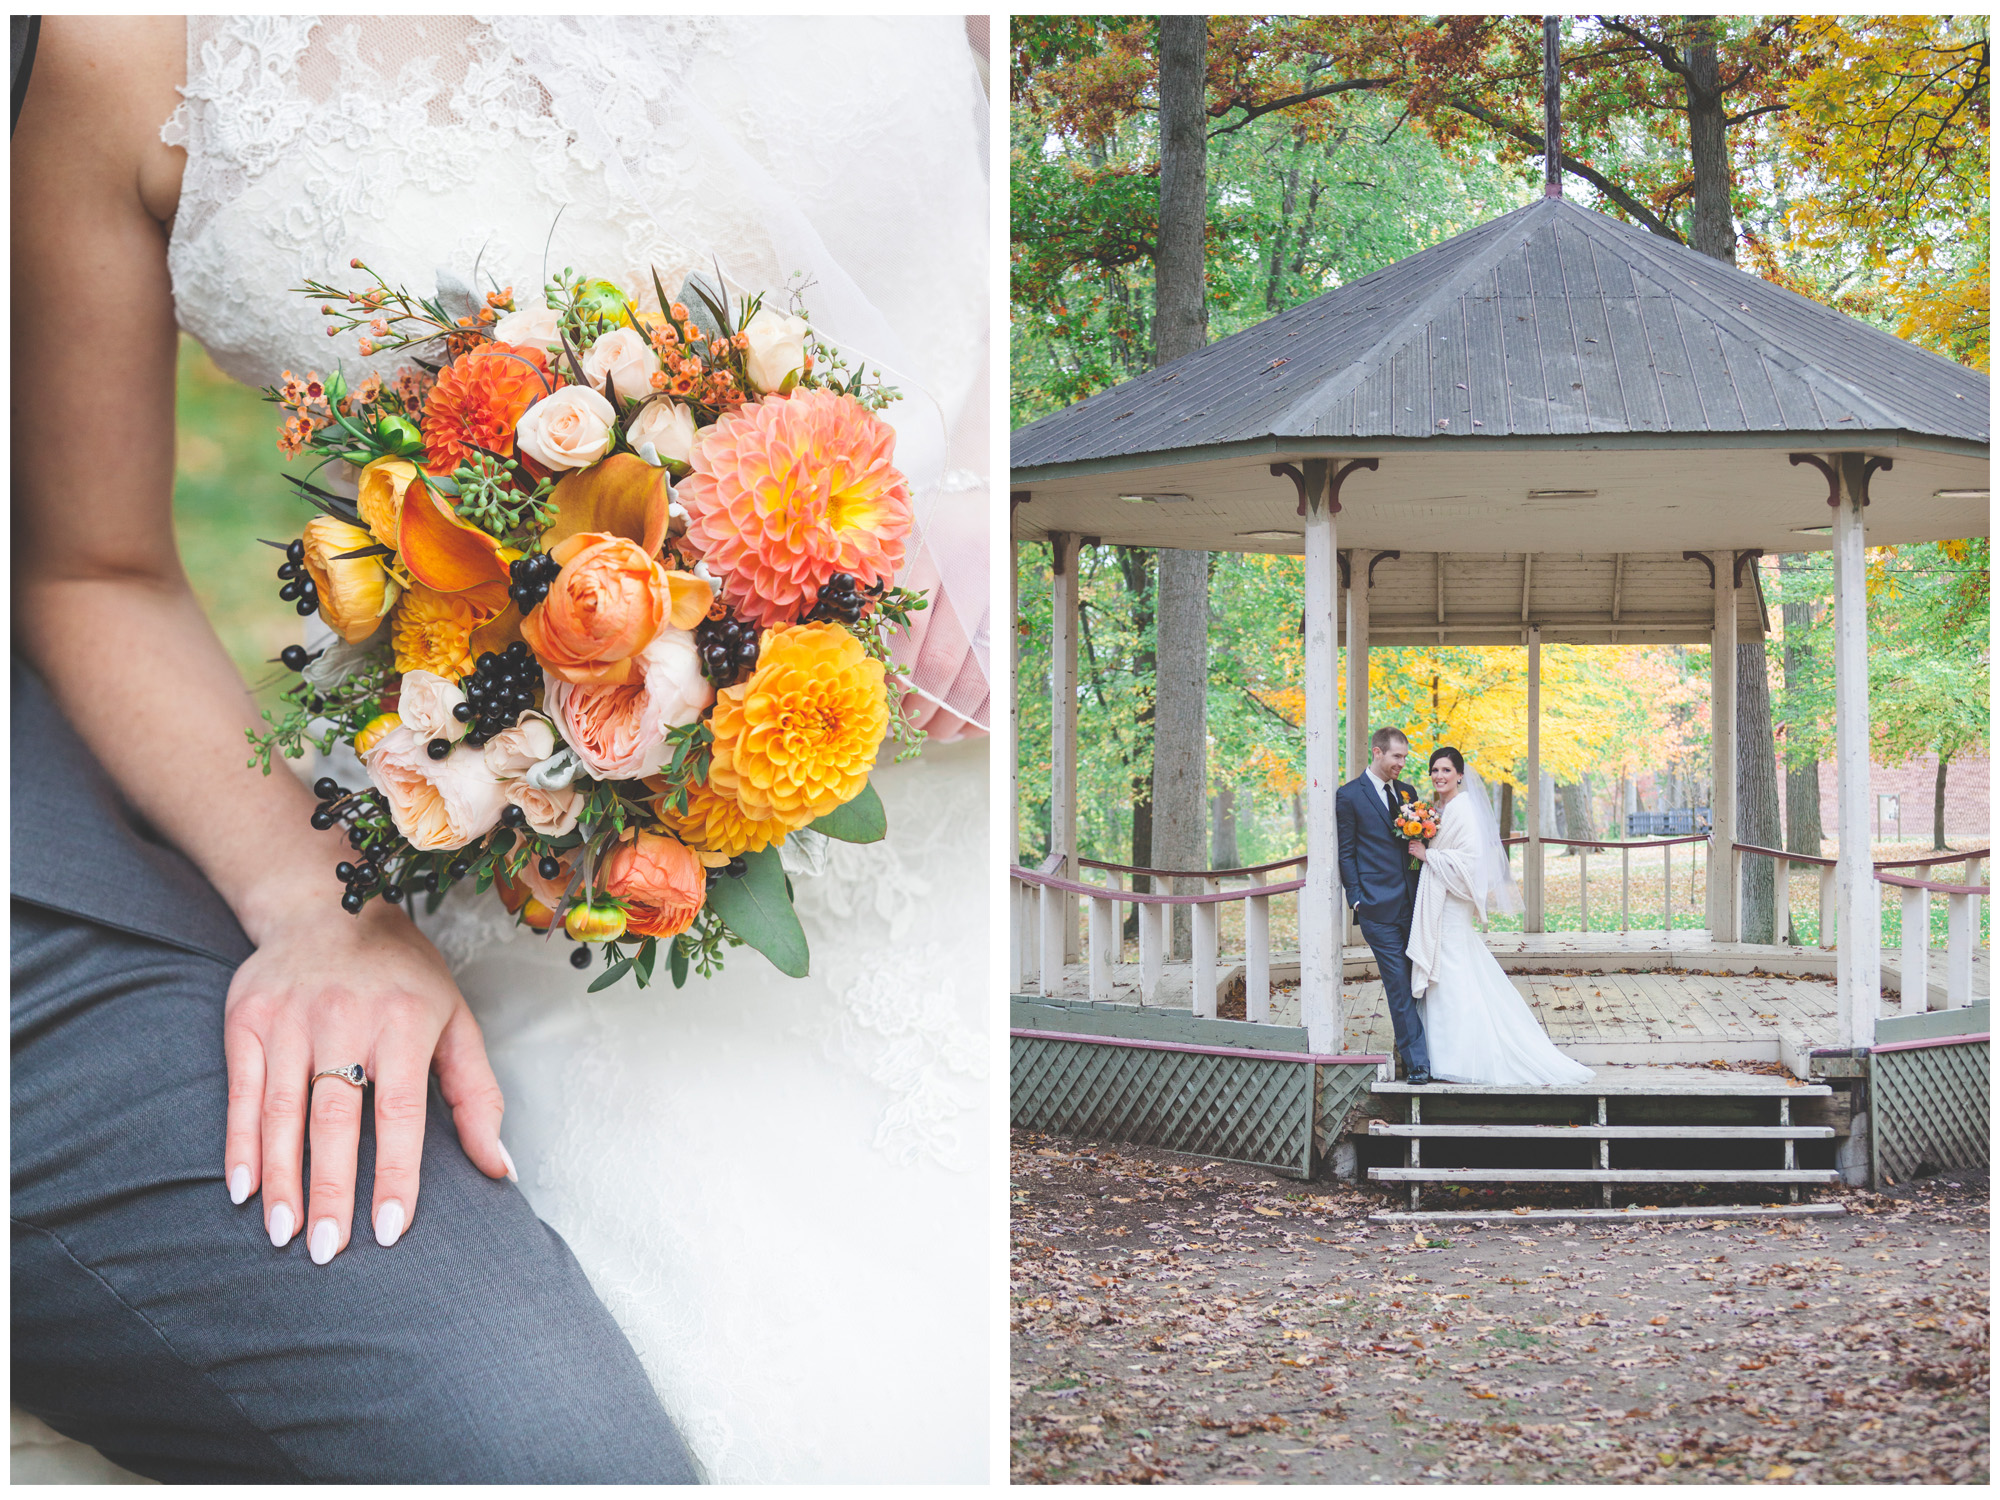 A lovely couple shot in the gazebo at Mohawk Park.